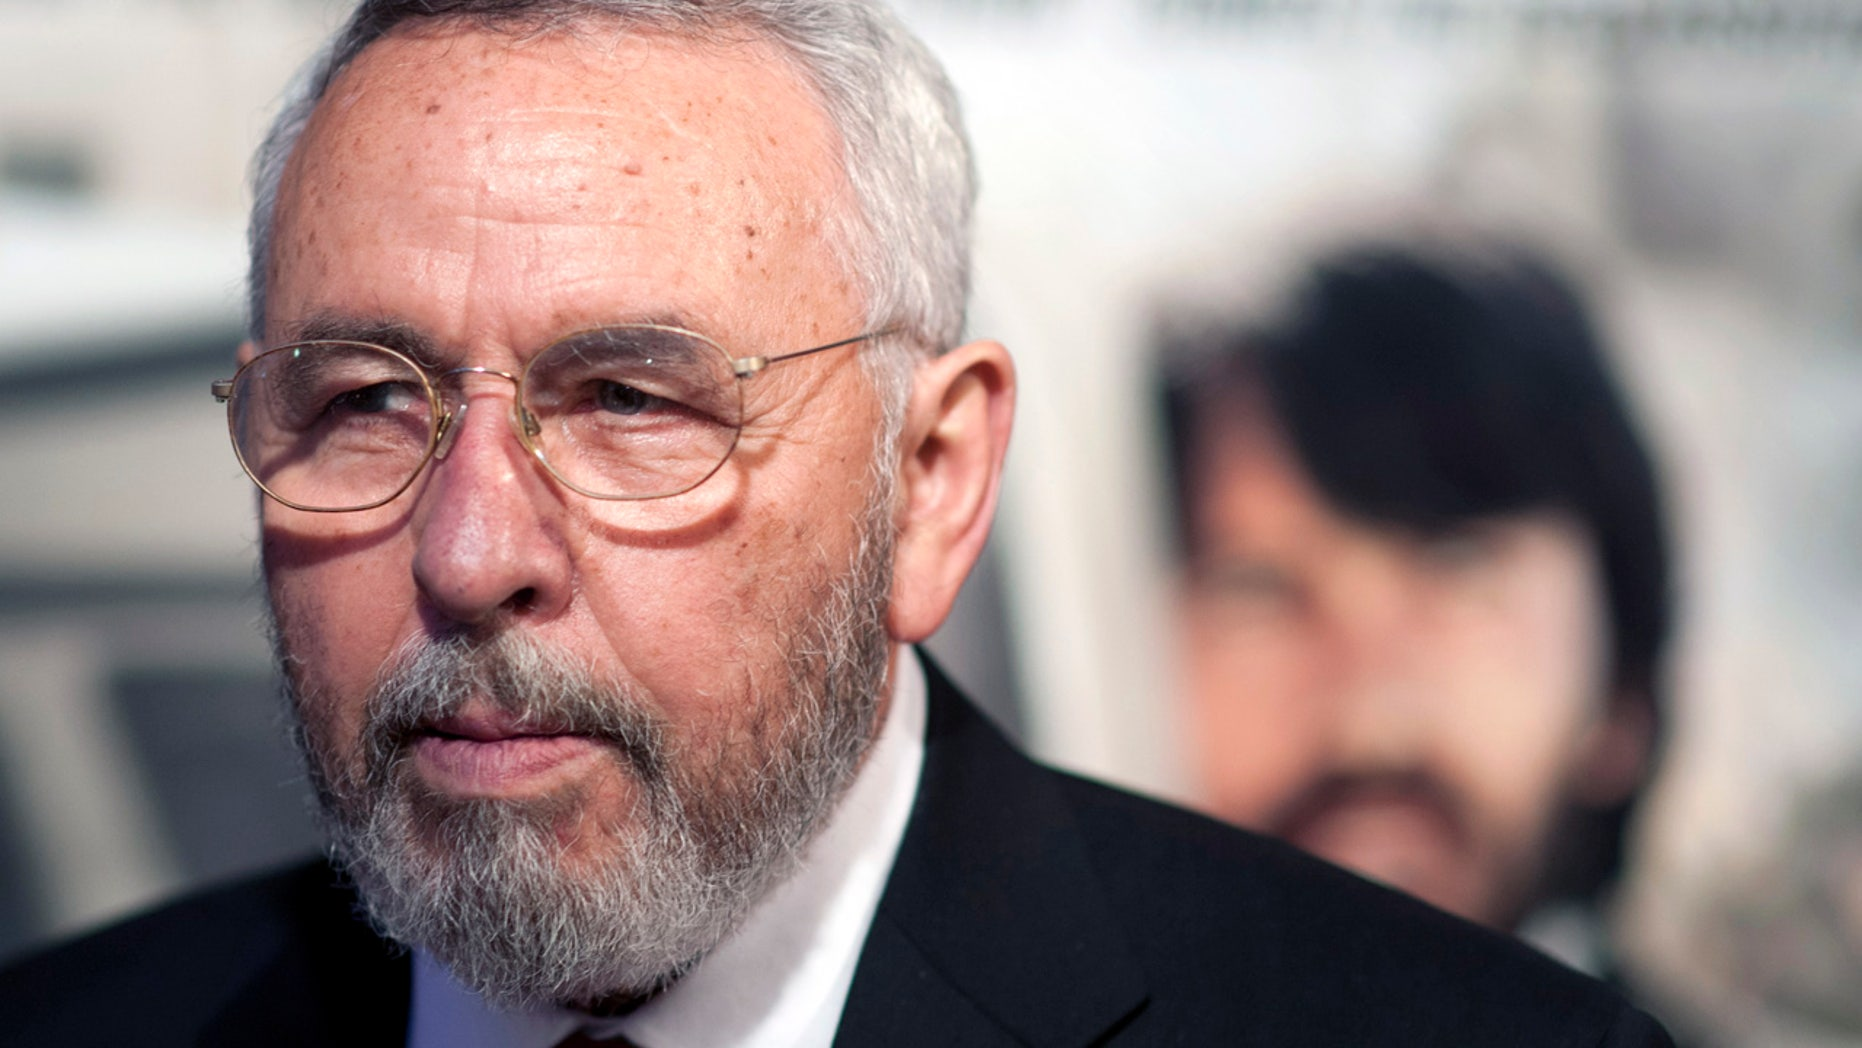 Tony Mendez was portrayed by Ben Affleck in the 2012 movie